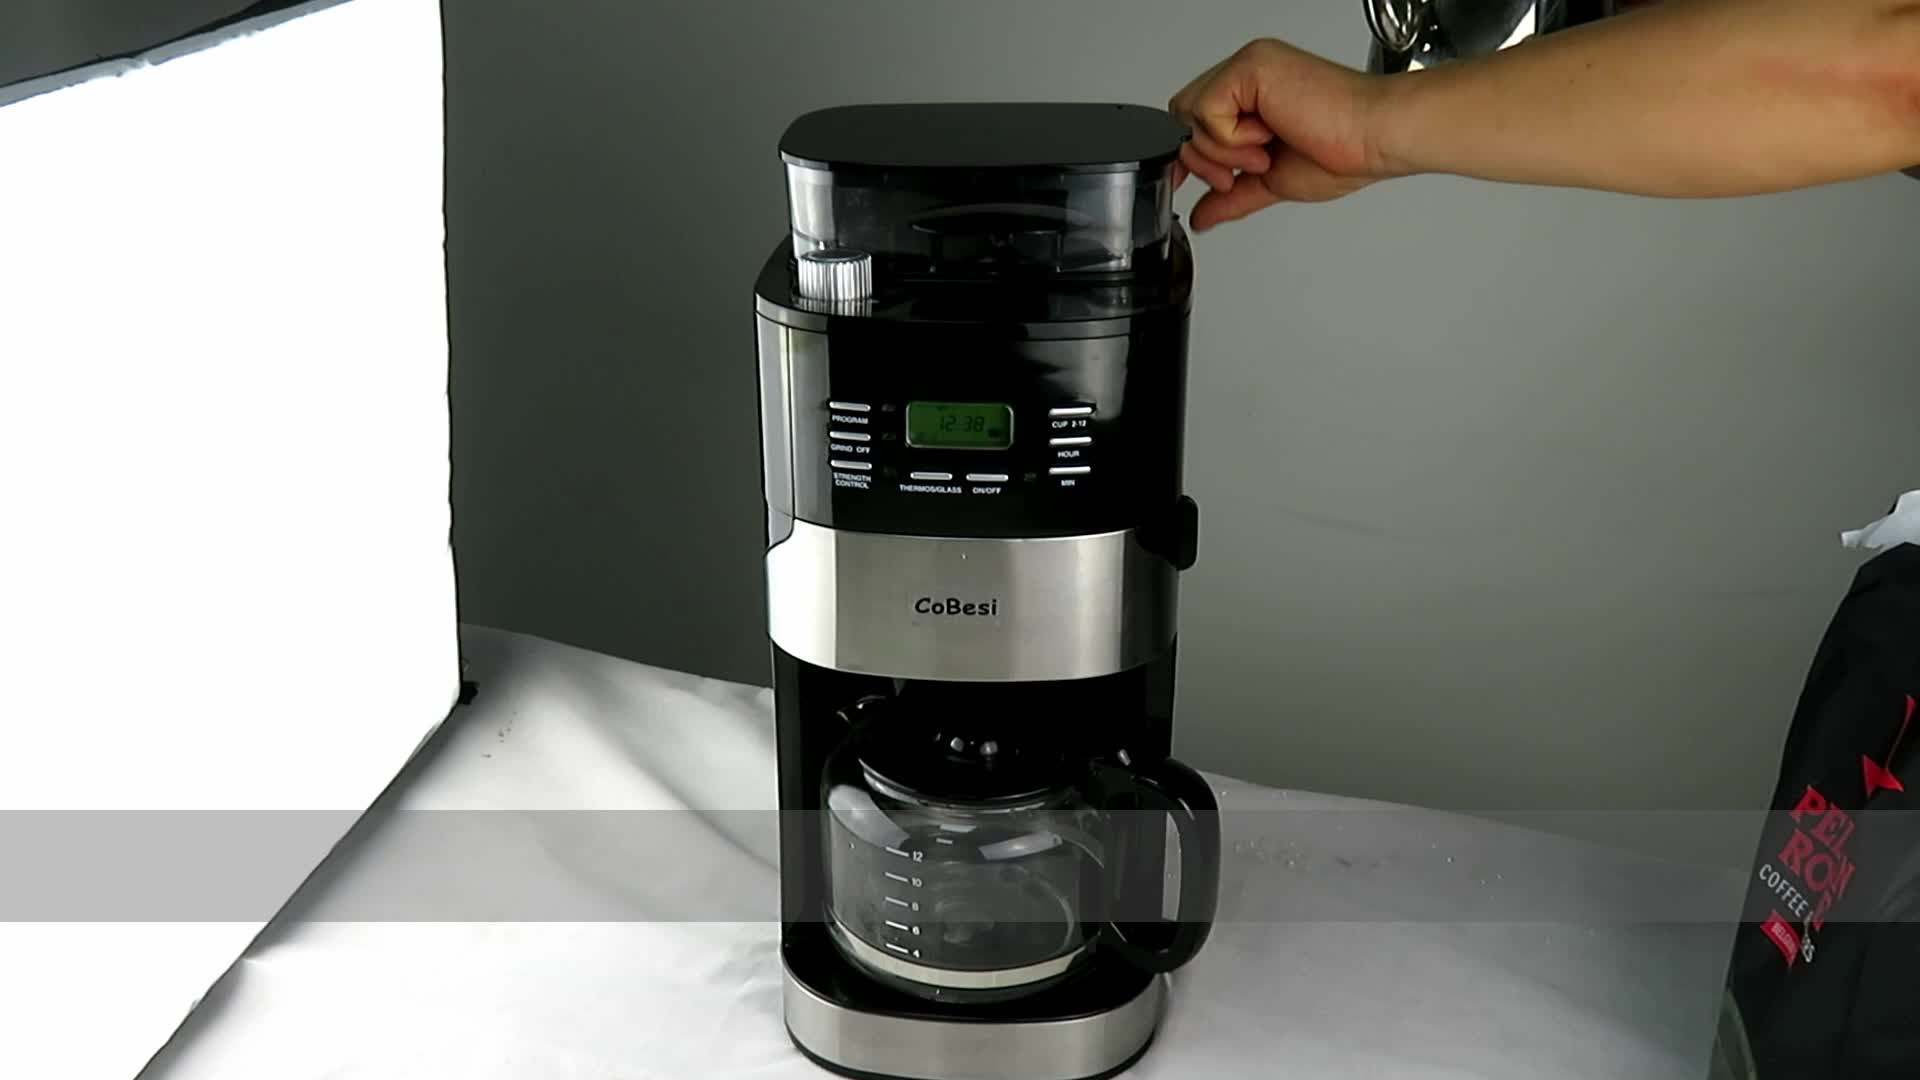 2018 new product 1.5L drip coffee maker with grinder